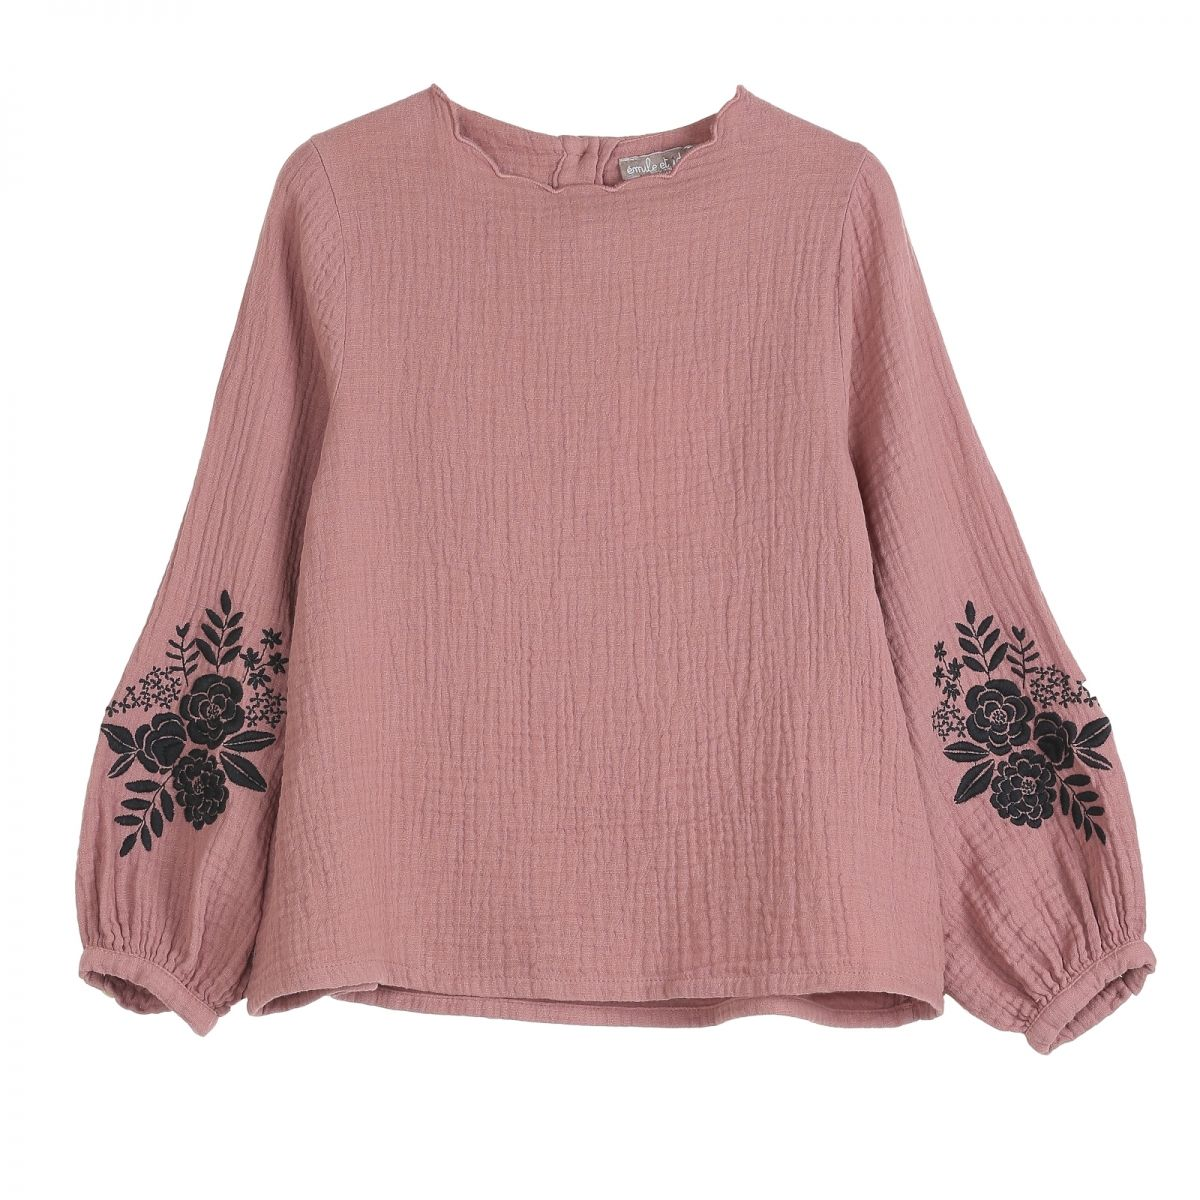 Emile et Ida Blouse Embroidered Chataigne pink